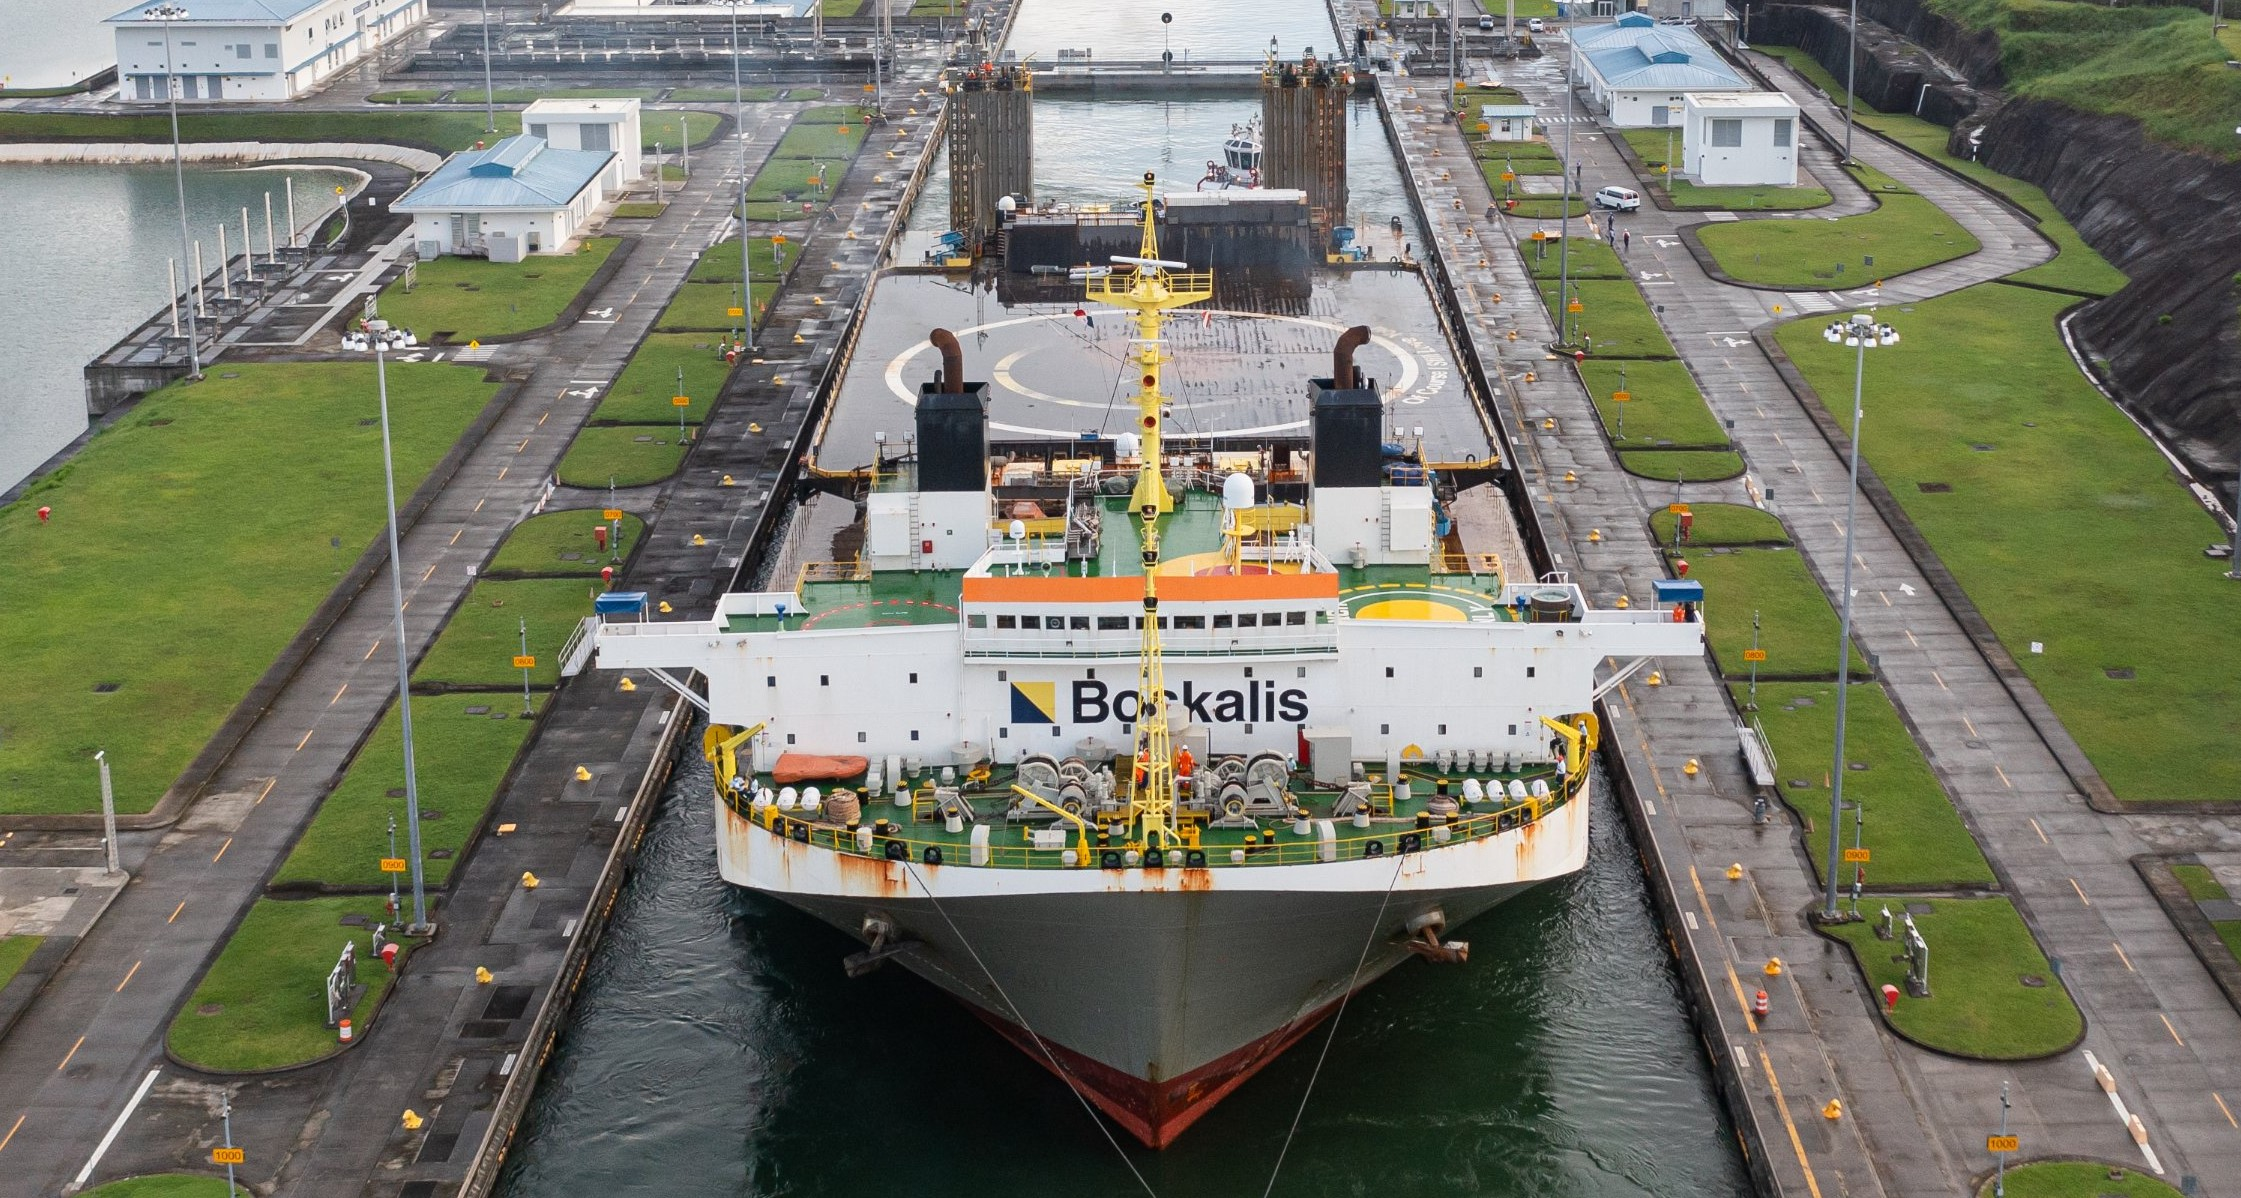 drone ship OCISLY canal transit 062521 (@ThePanamaCanal) 4 crop